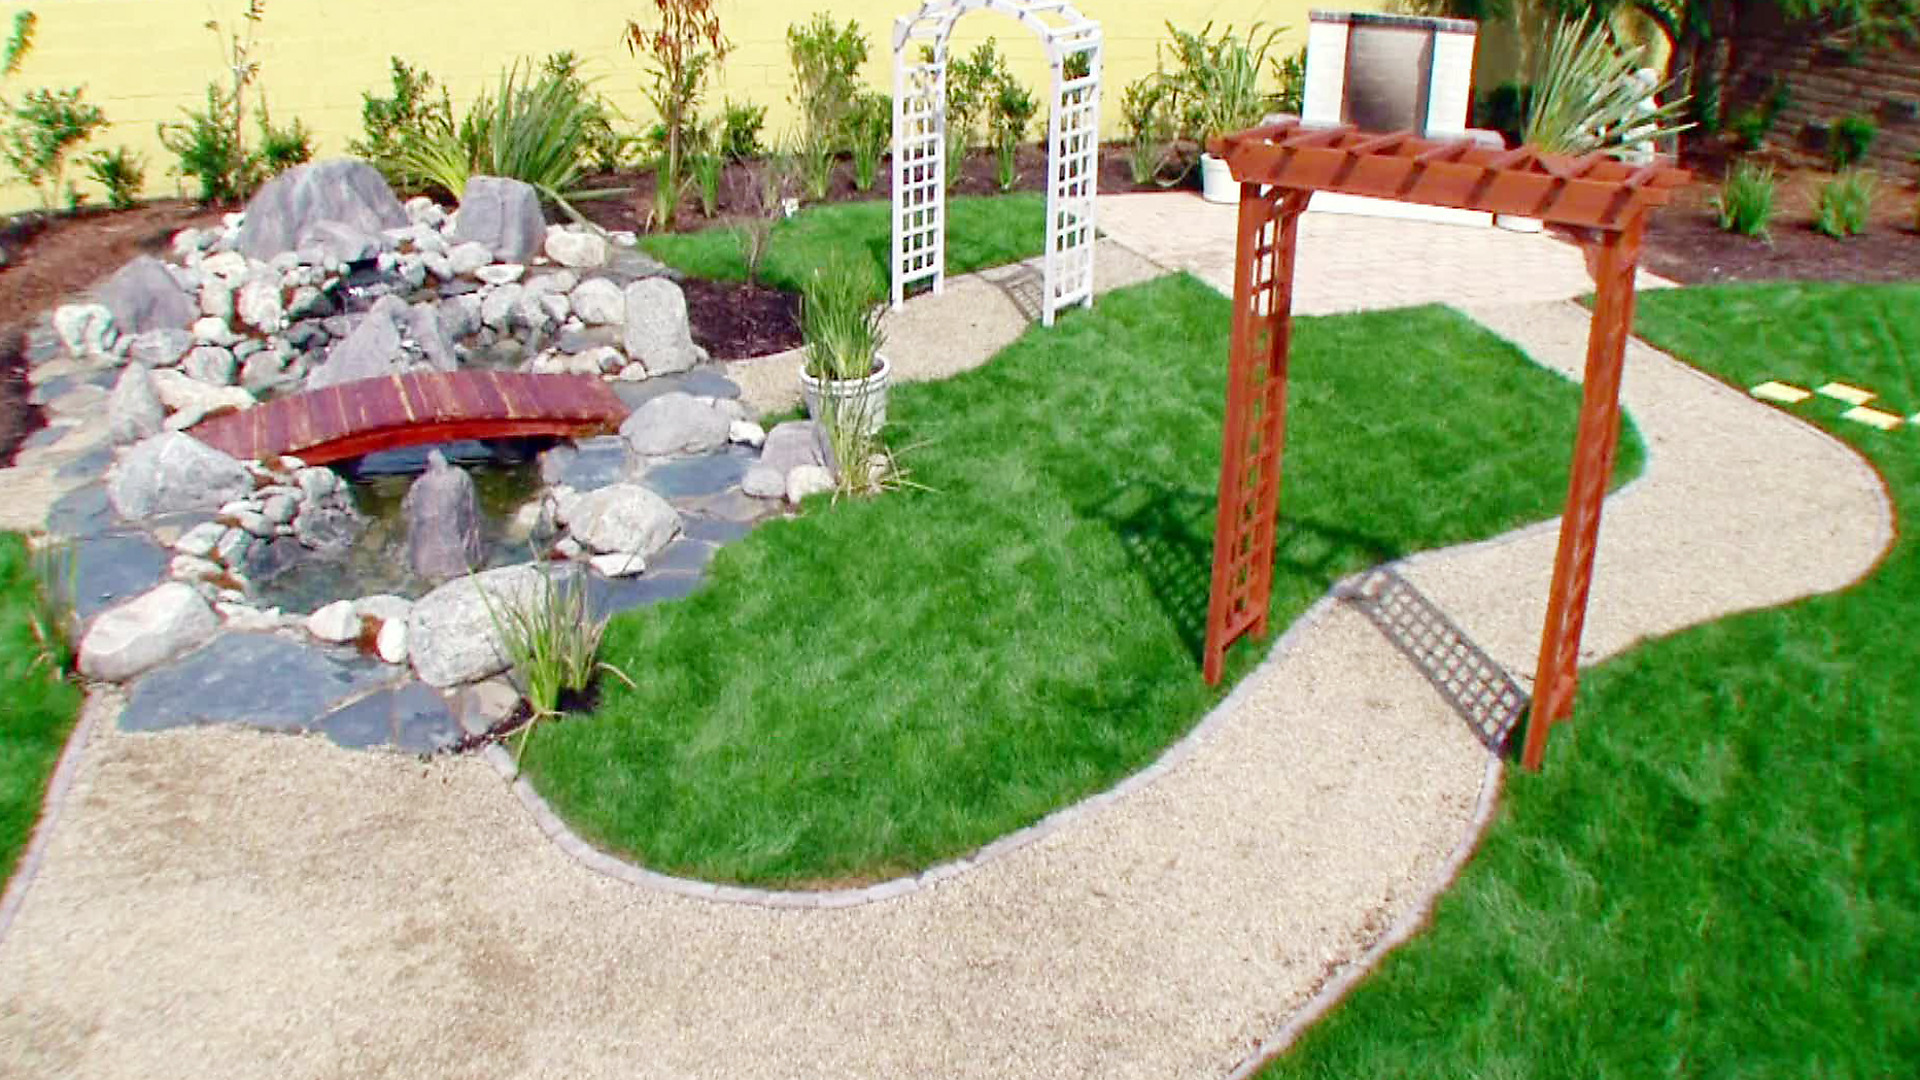 7 Landscaping Mistakes to Avoid